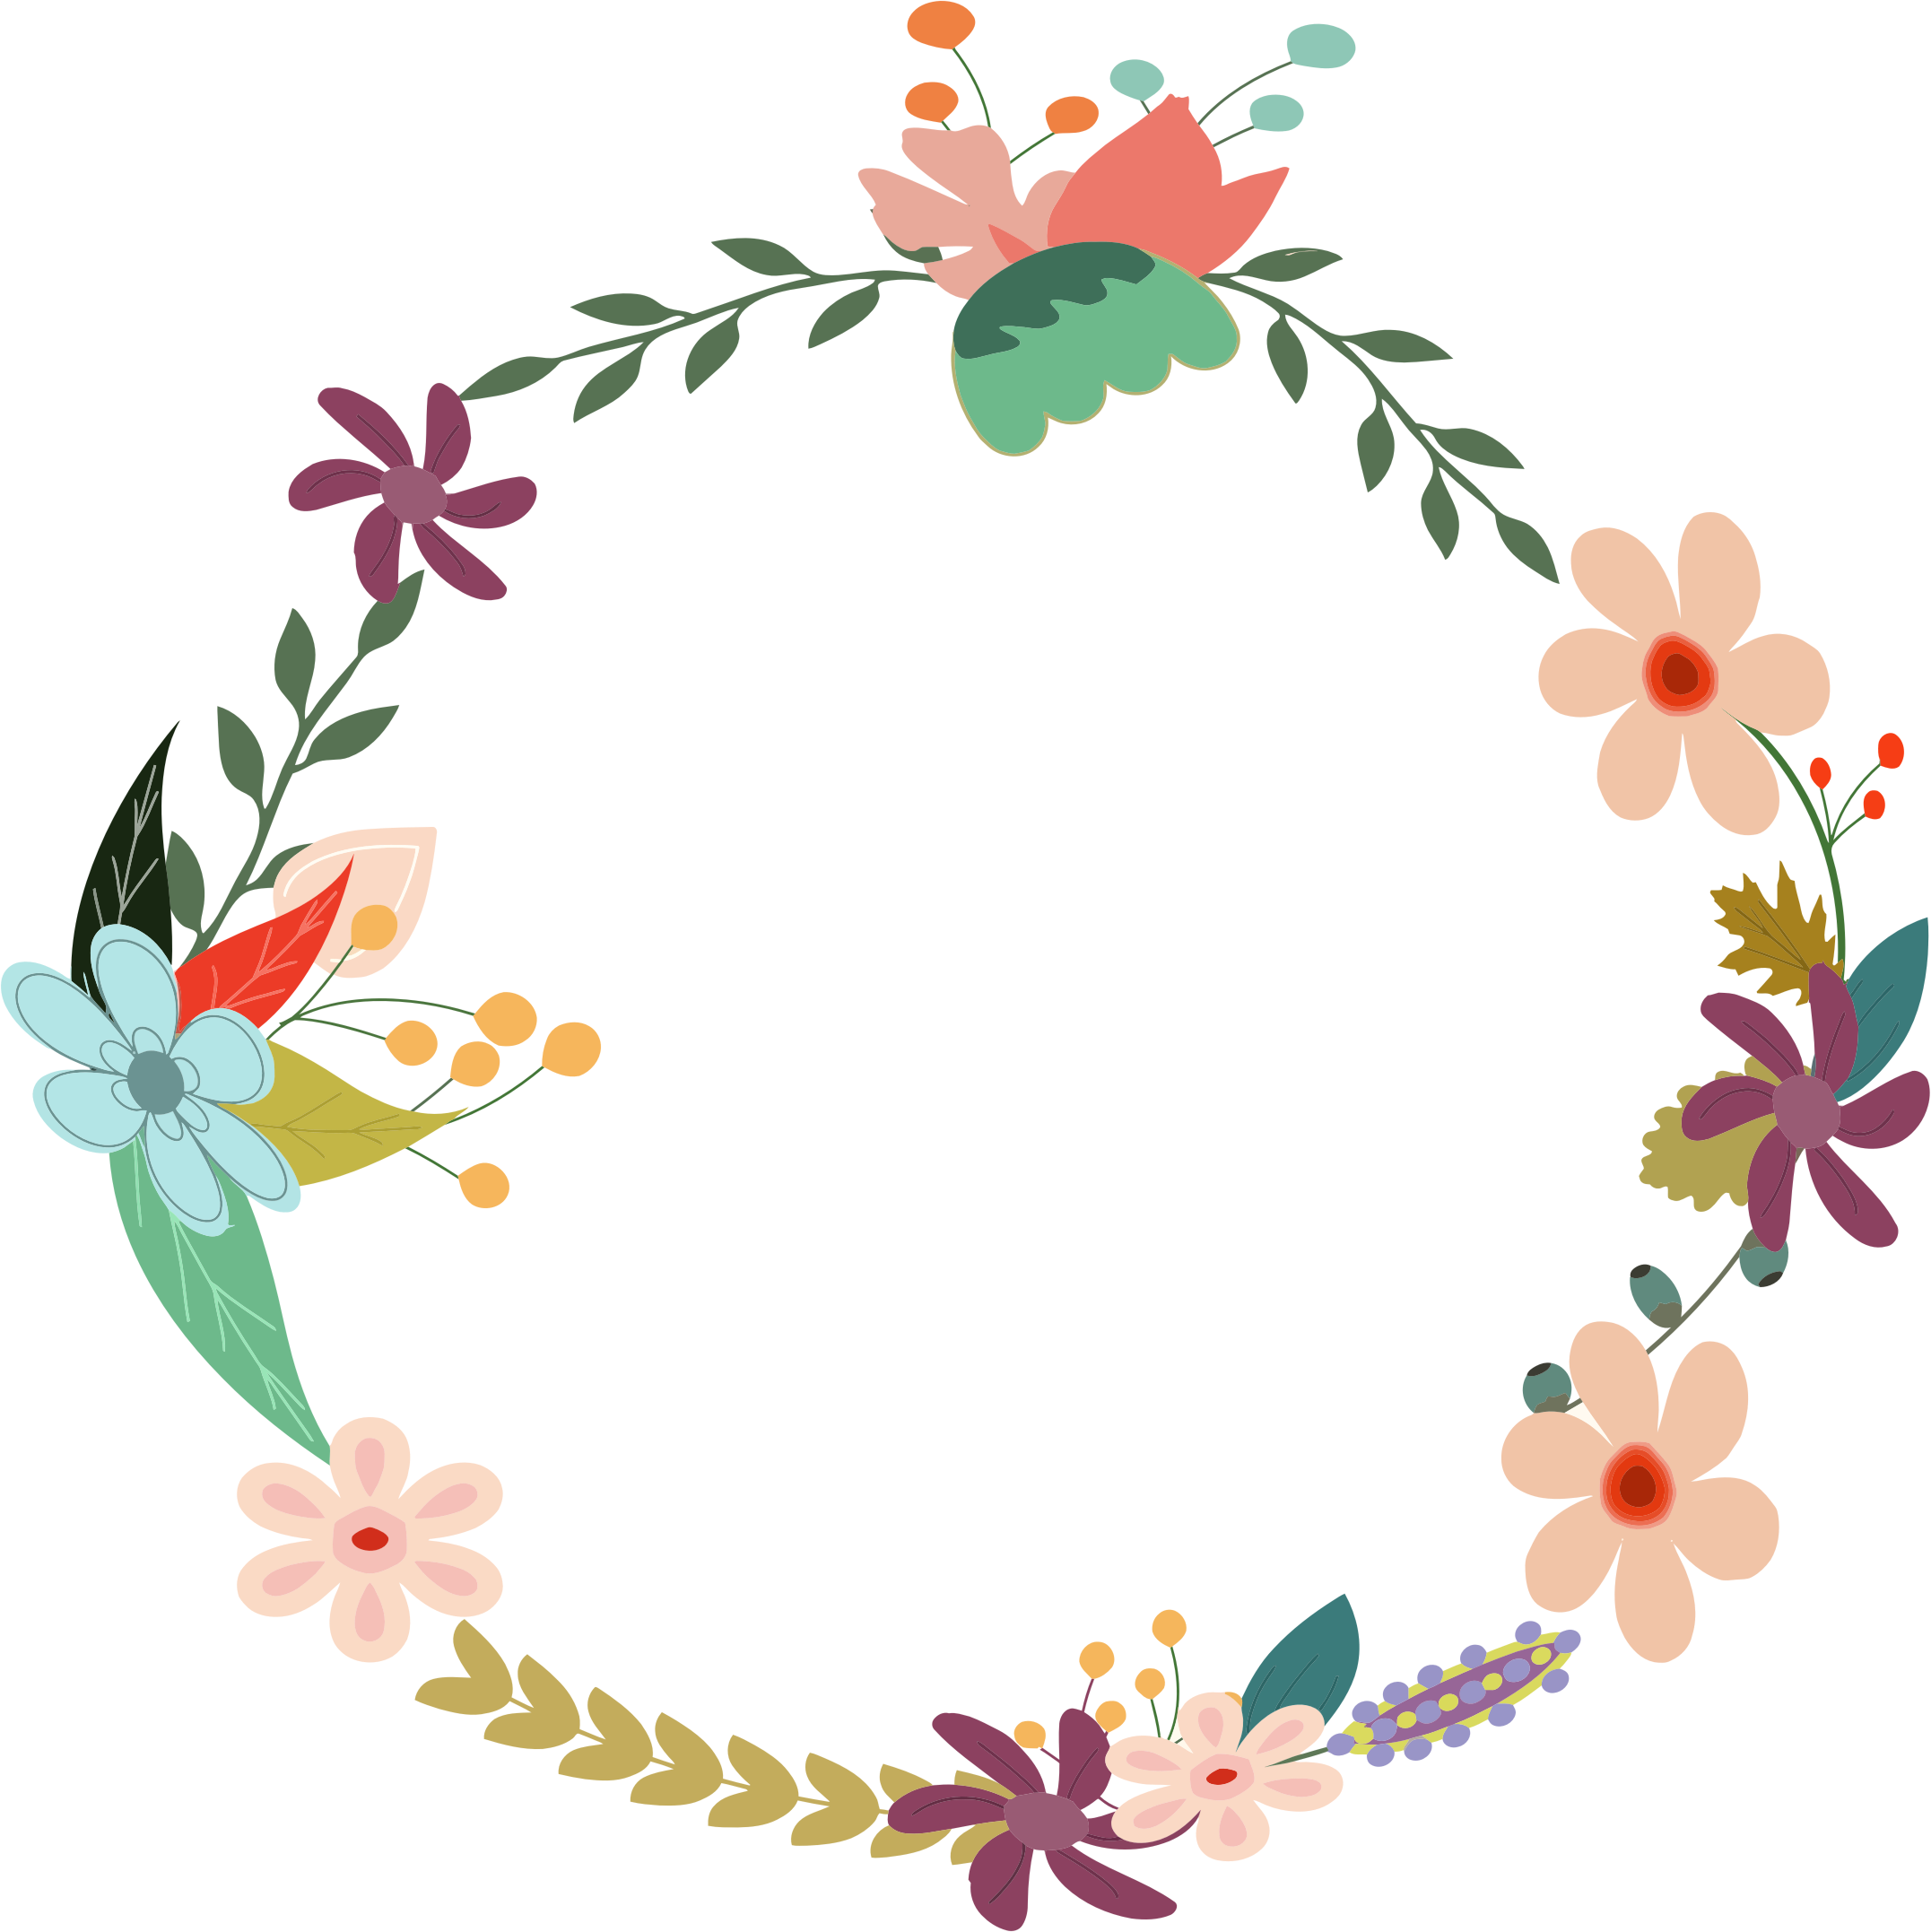 clipart freeuse Vintage floral by gdj. Accents clipart garland wreath.